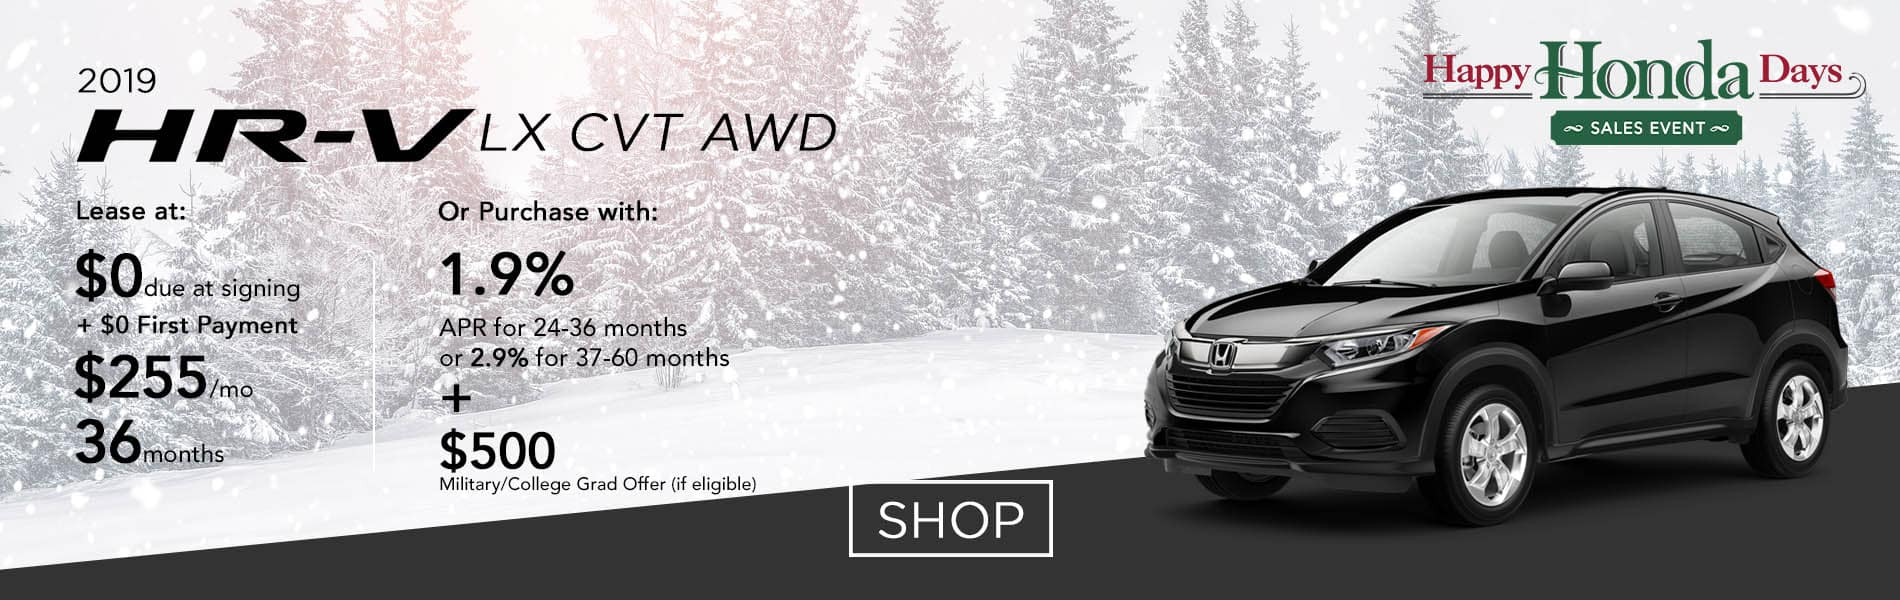 Lease a 2019 HR-V LX CVT AWD for $255 per month or purchase with 1.9% APR up to 36 months